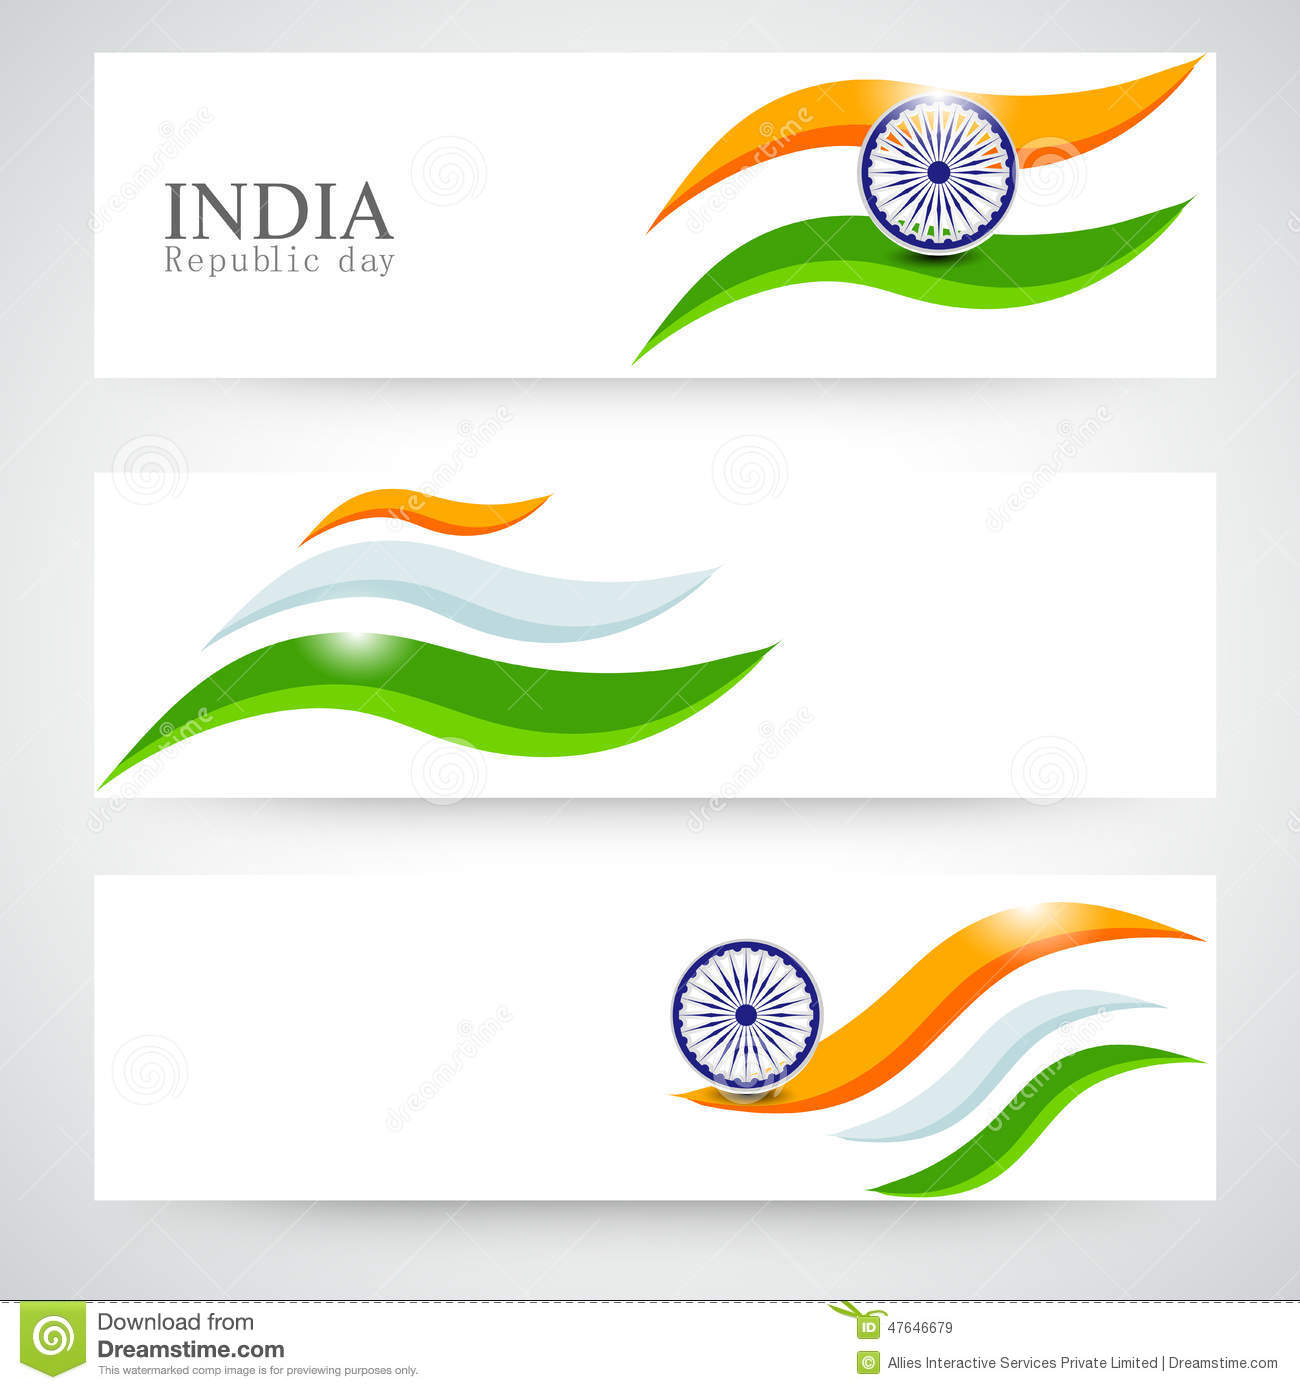 Colors website ashoka - Header Or Banner Set For Indian Republic Day Celebration Royalty Free Stock Images